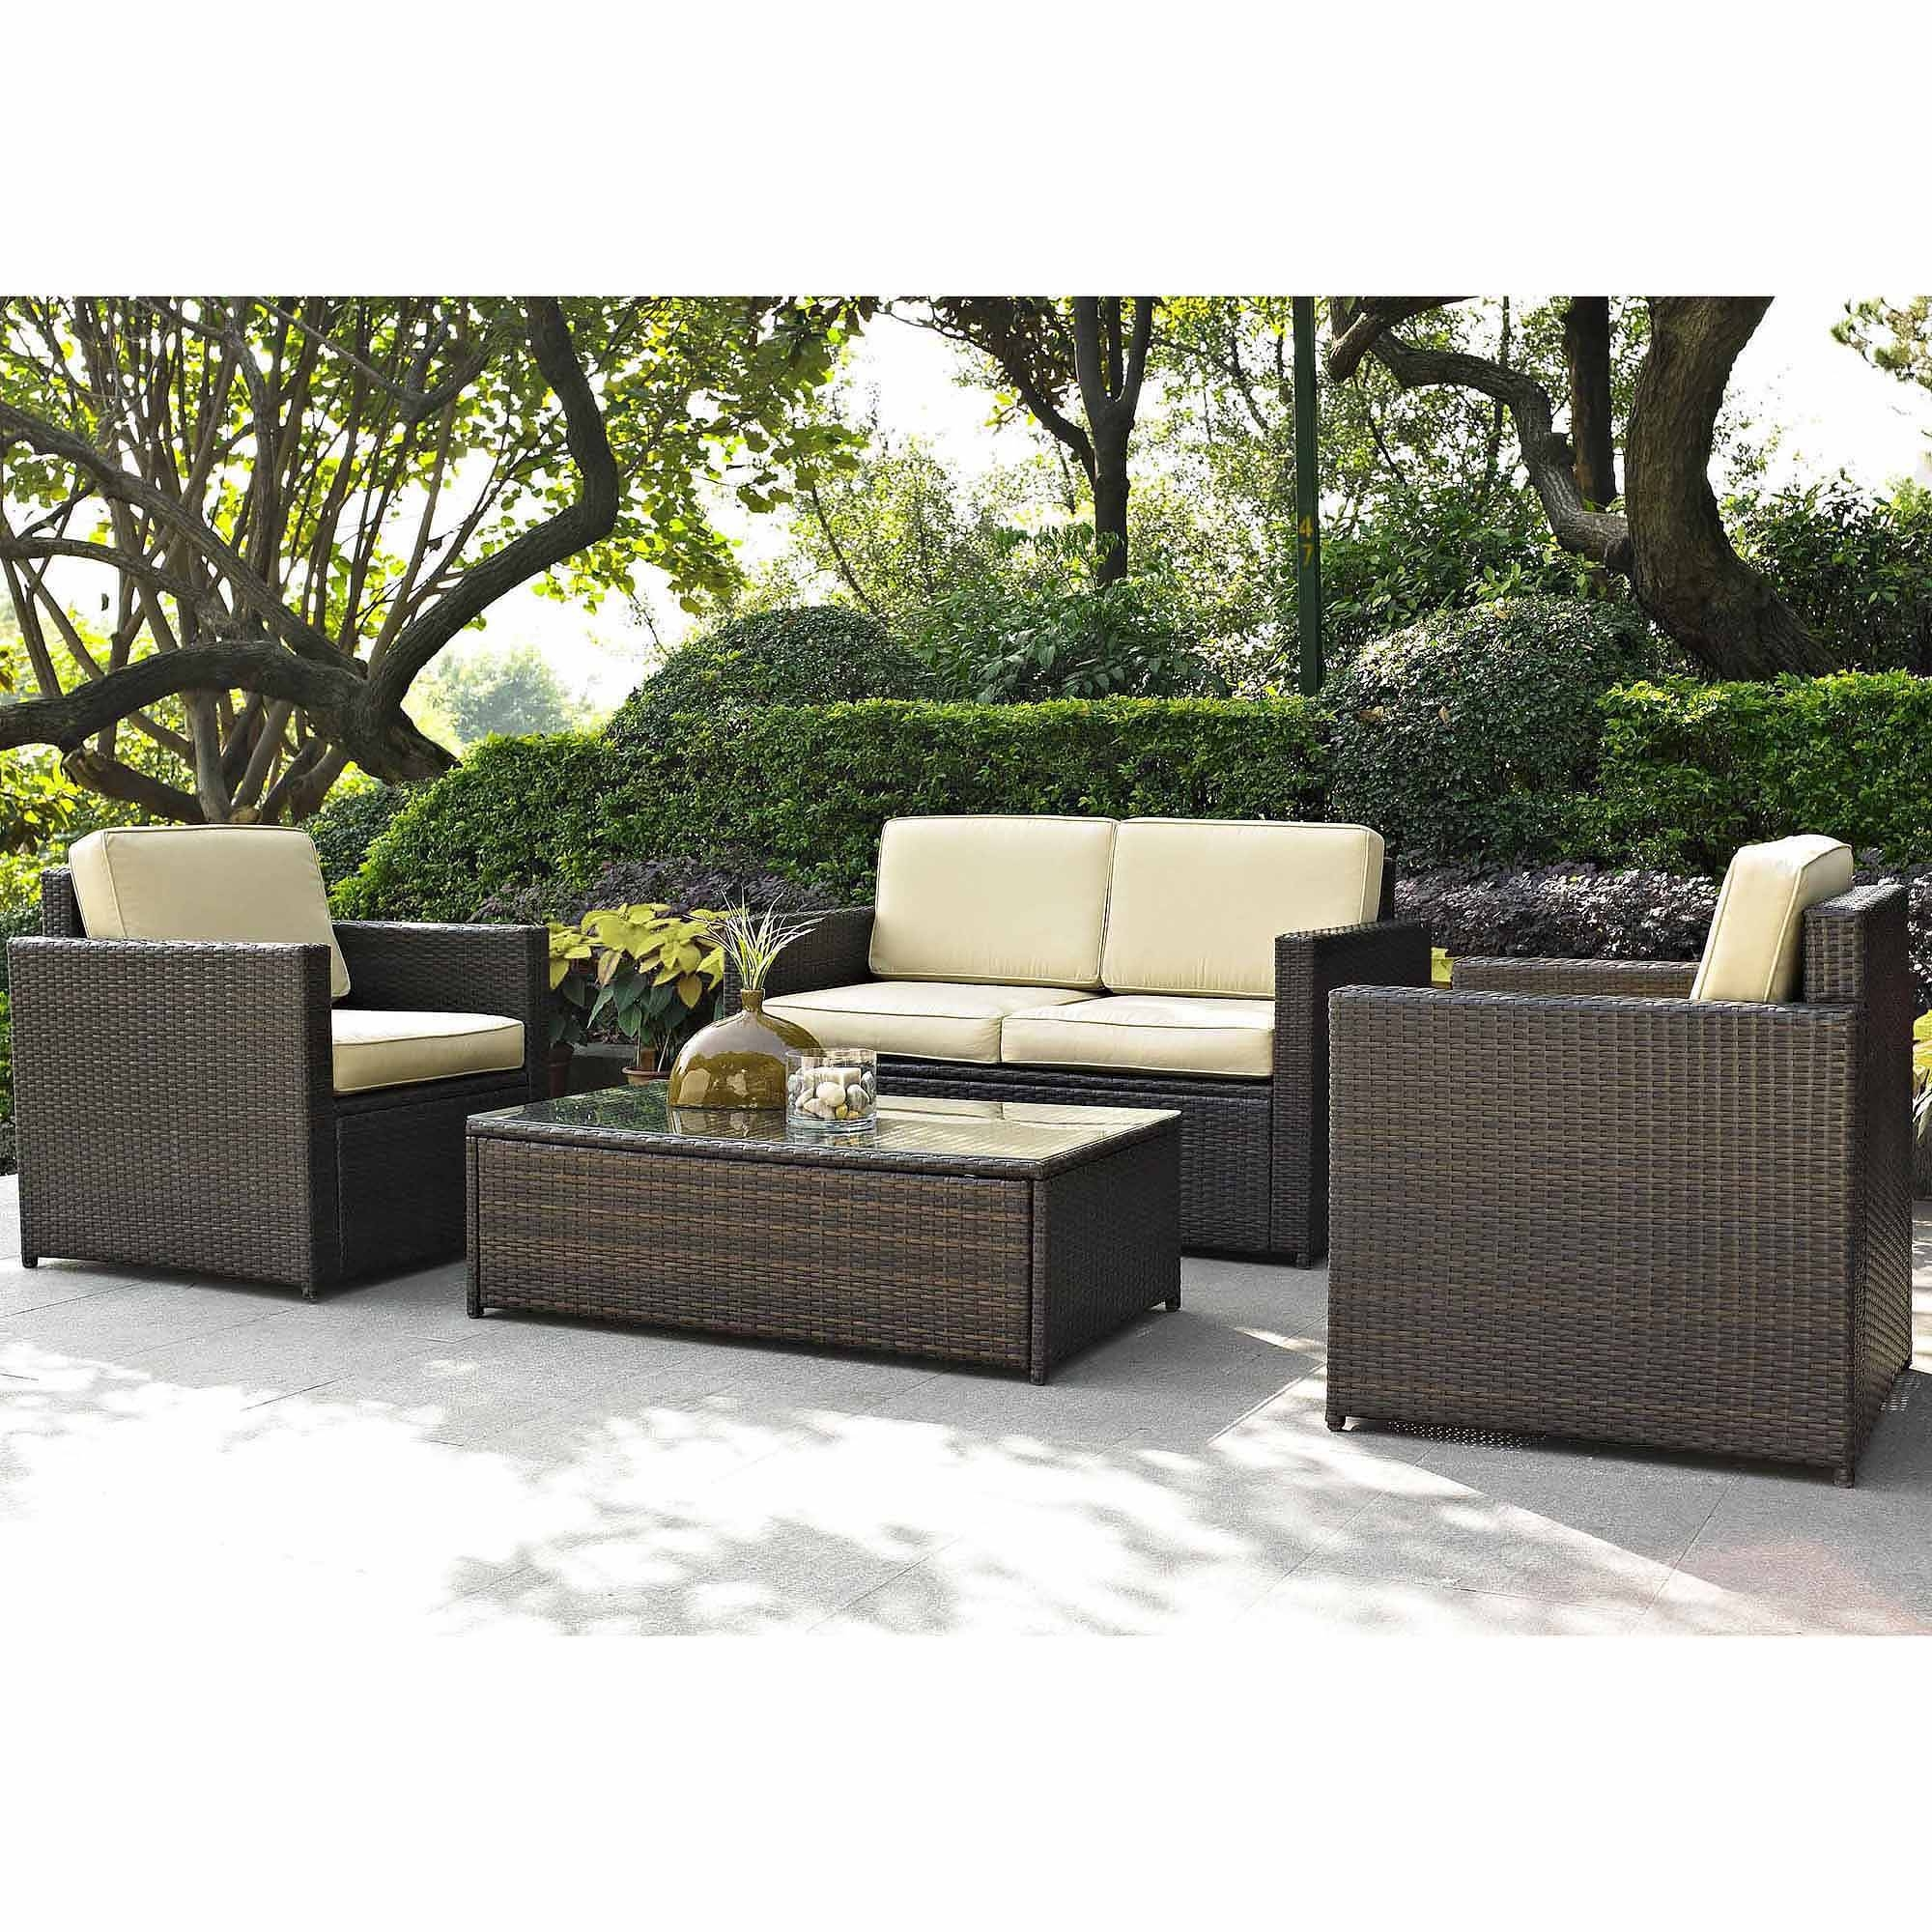 Best Choice Products Outdoor Garden Patio 4Pc Cushioned Seat Black intended for Modern Rattan Sofas (Image 5 of 30)